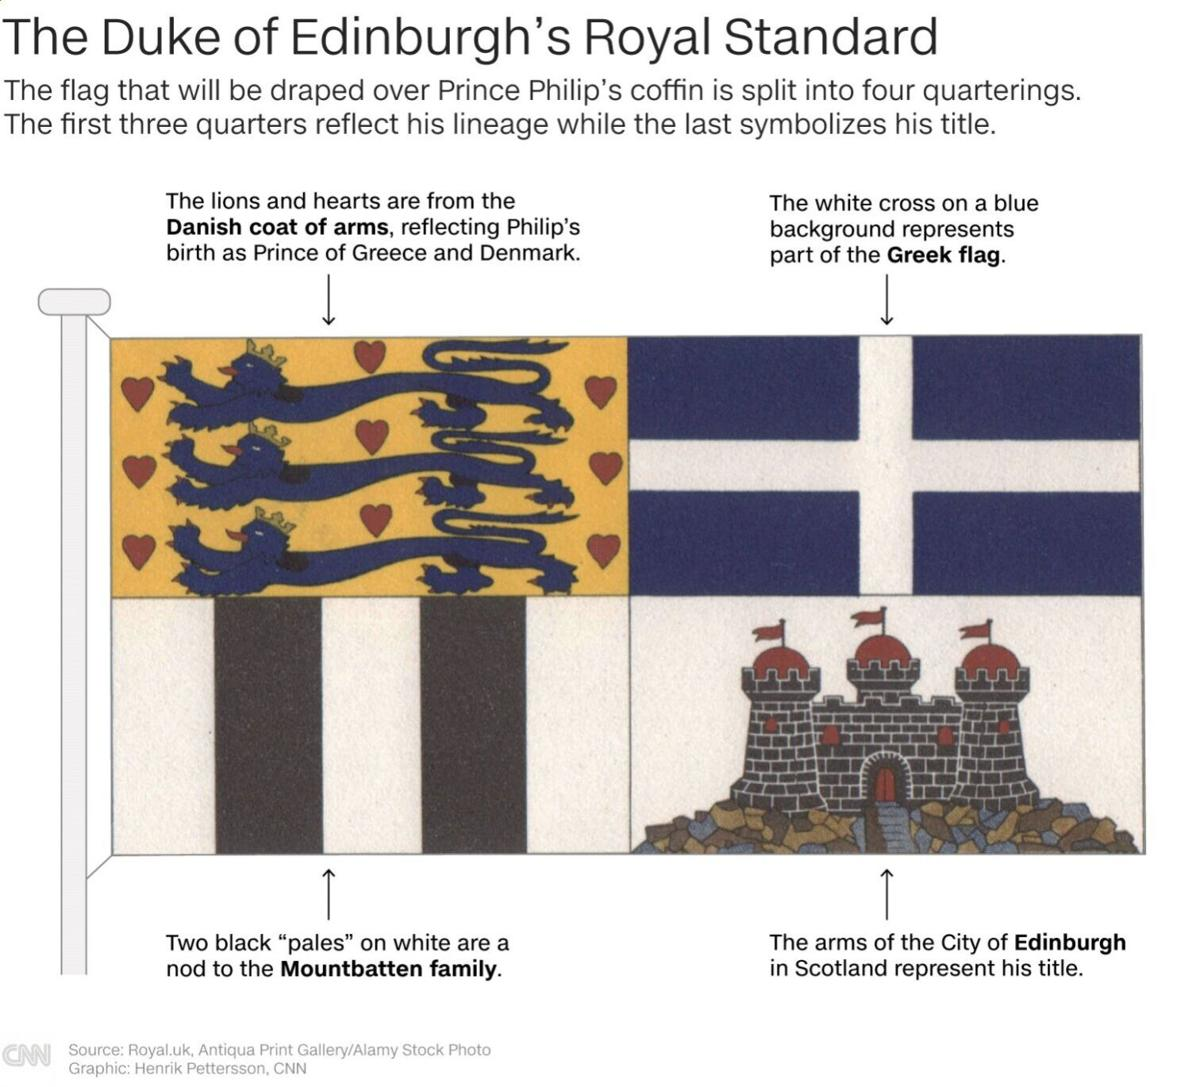 The Duke of Edinburgh's Royal Standard